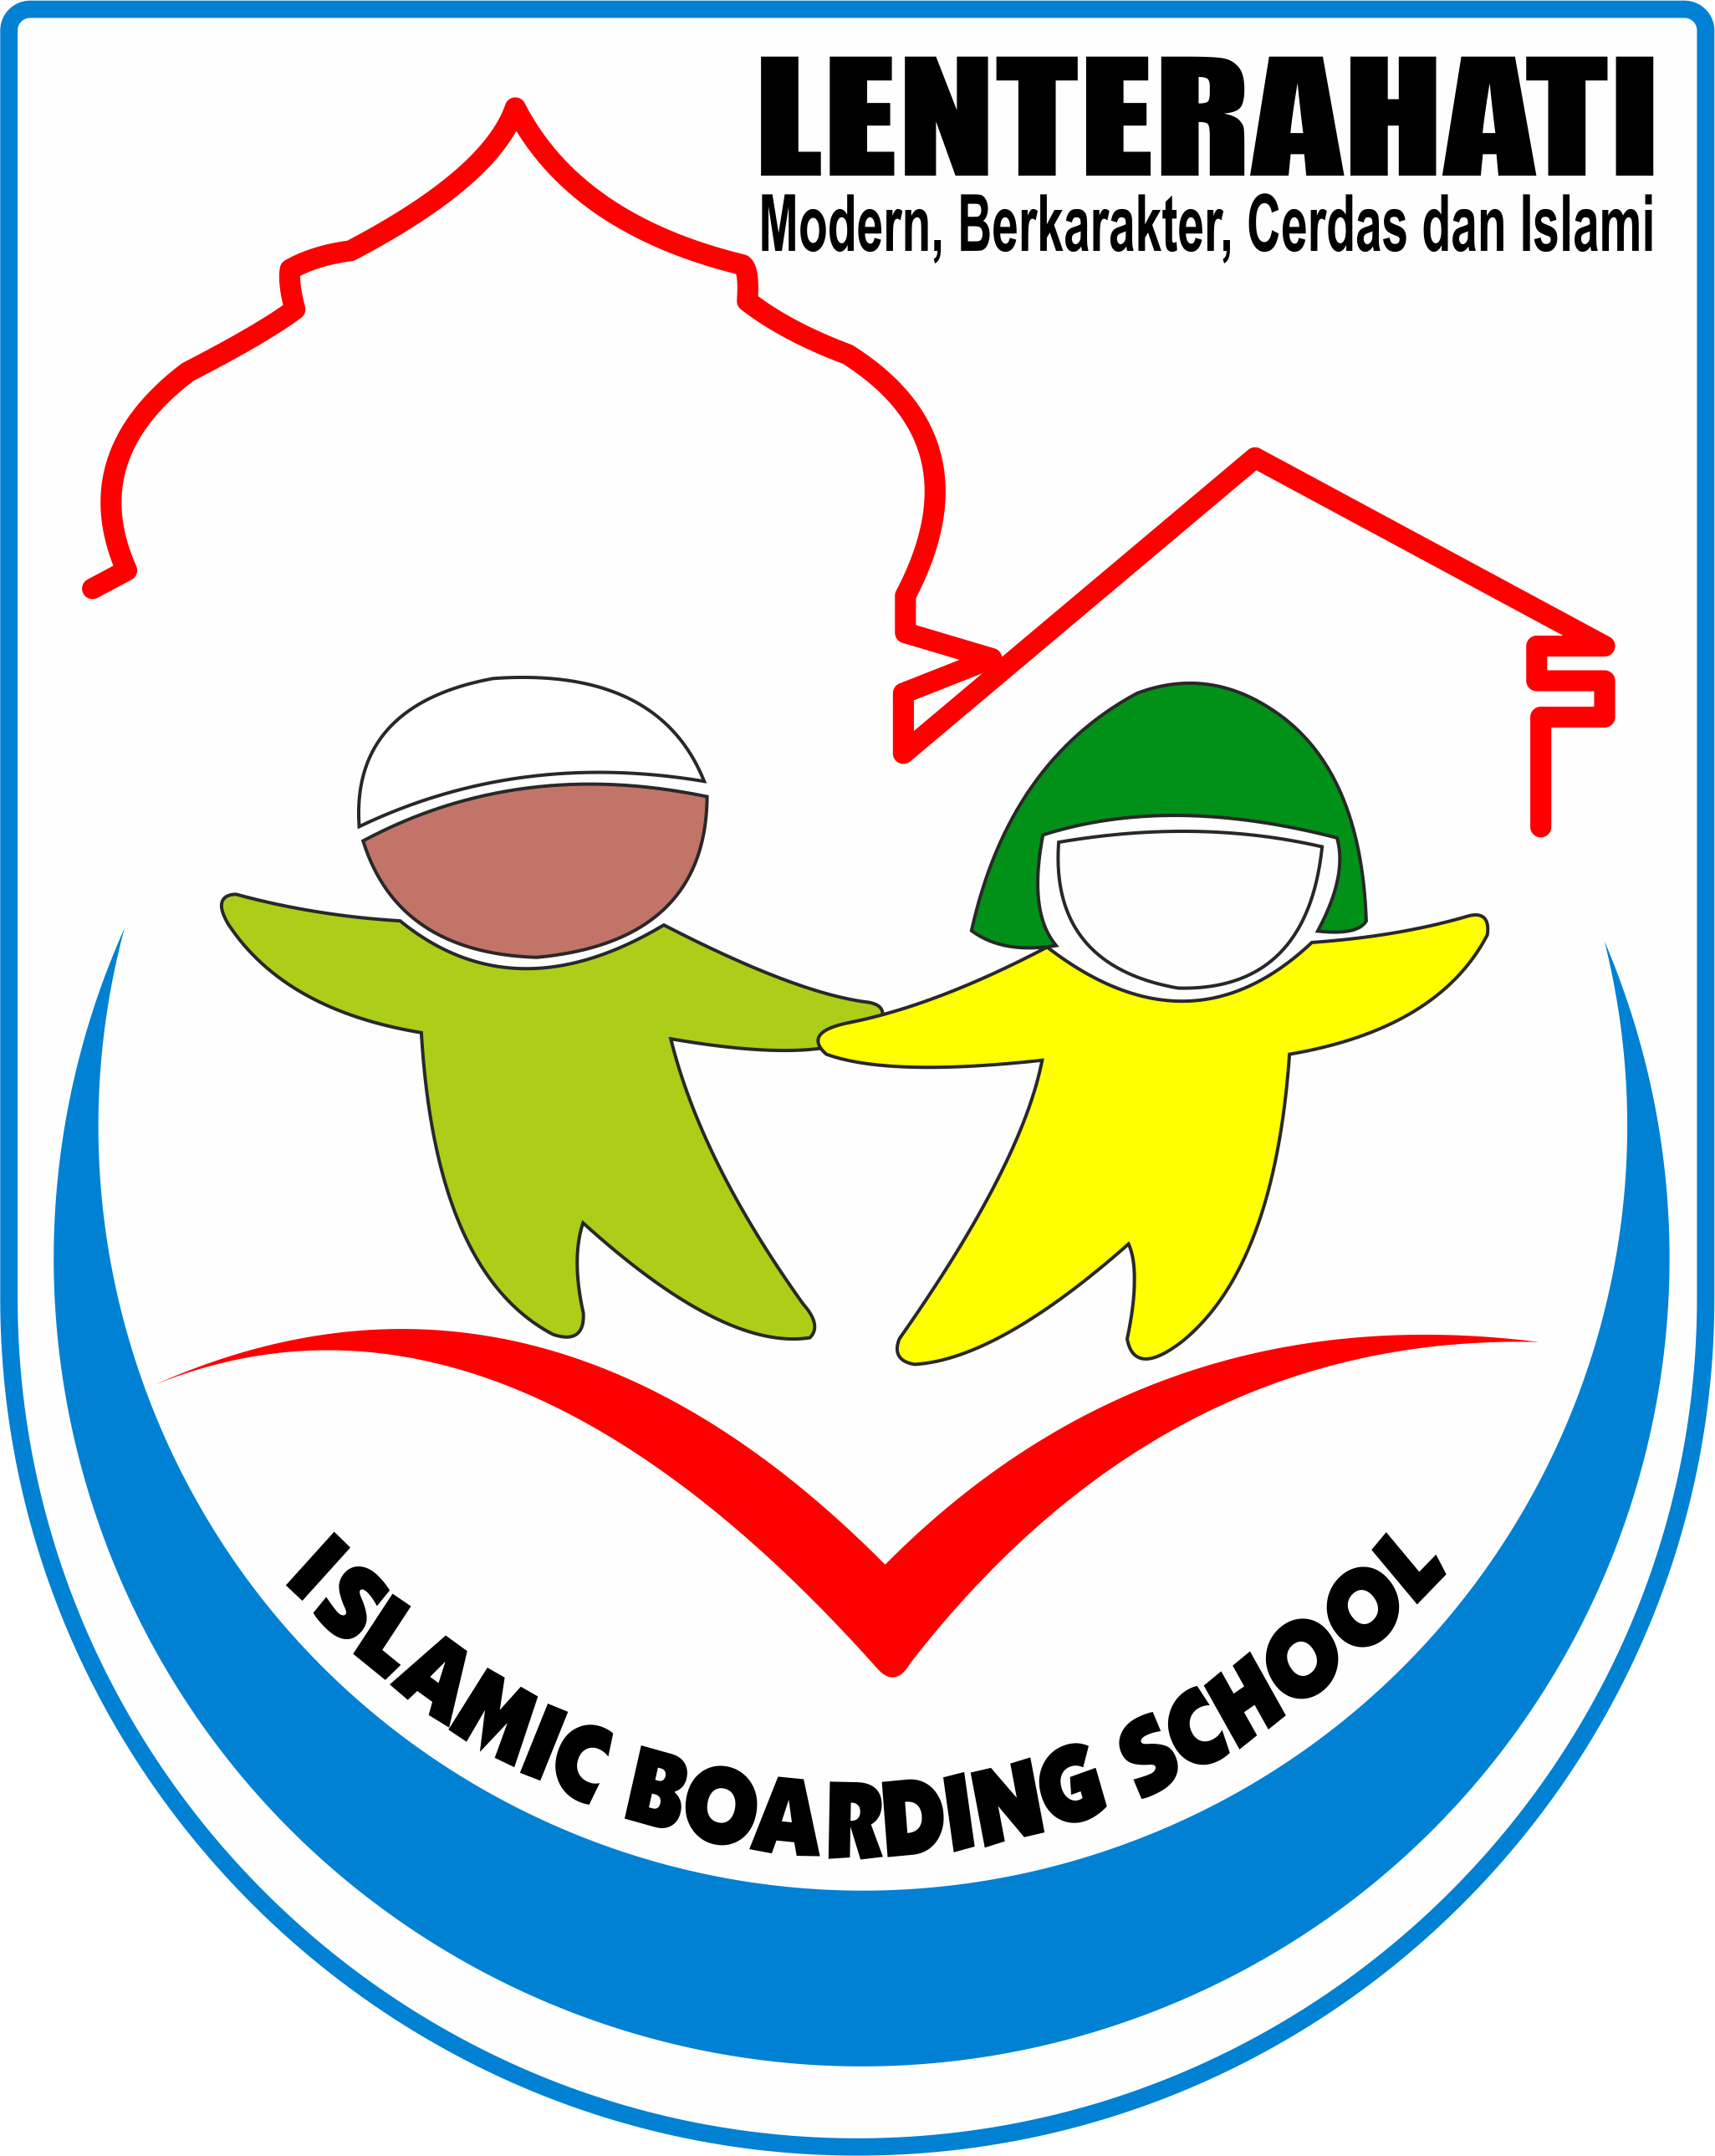 LENTERAHATI ISLAMIC BOARDING SCHOOL